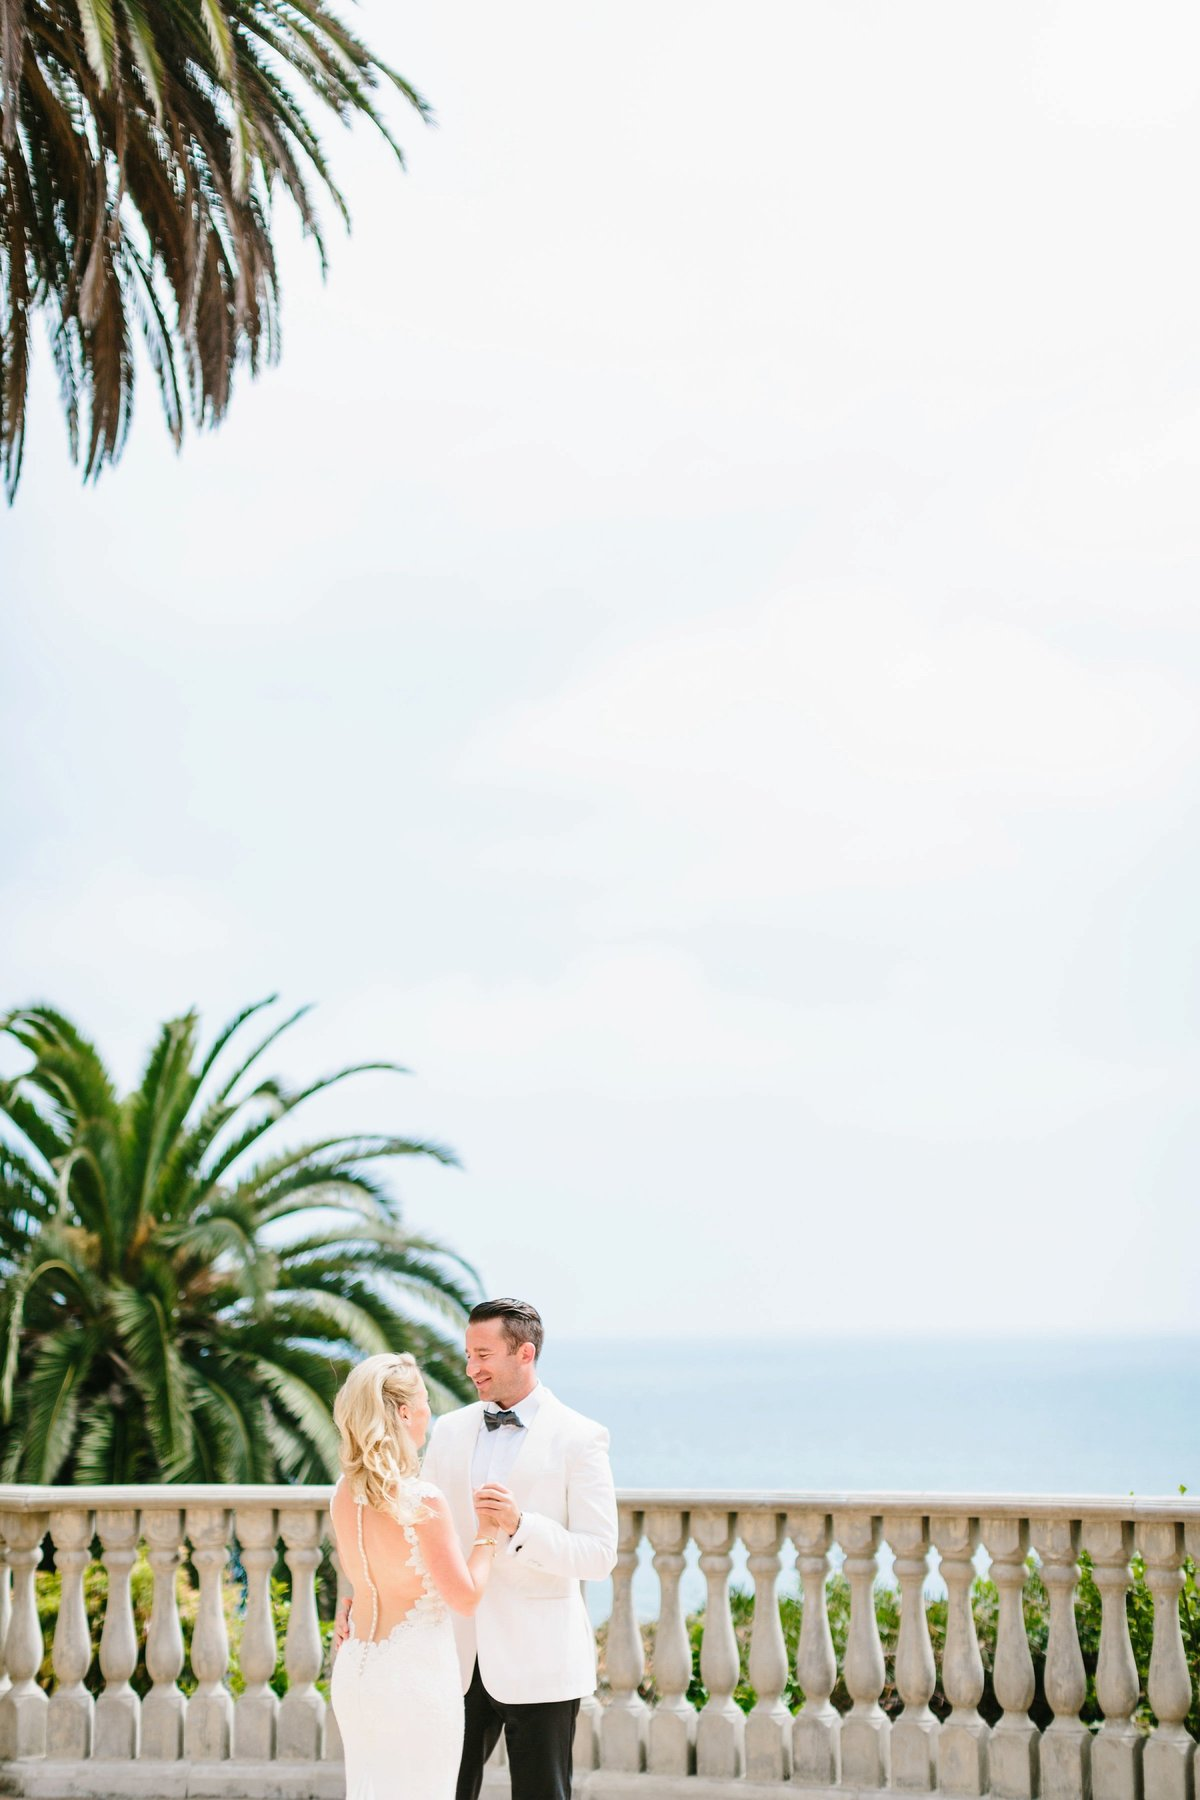 Best California Wedding Photographer-Jodee Debes Photography-296